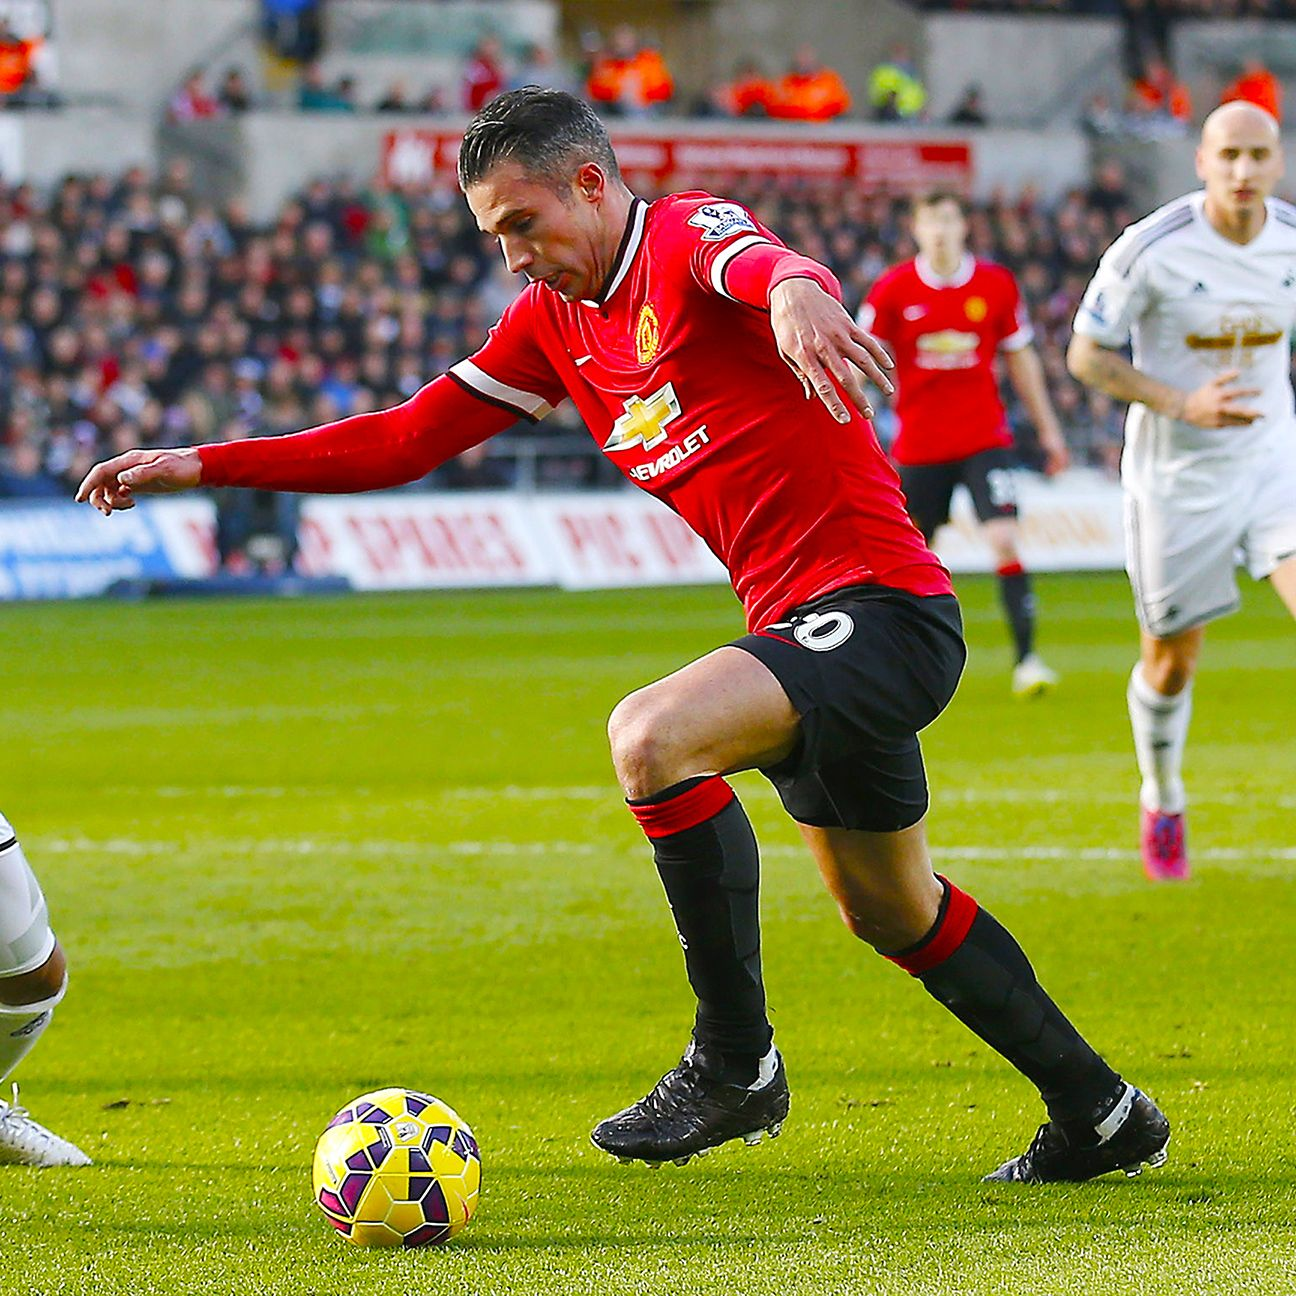 Robin van Persie has been out of action for Manchester United since last month's 2-1 defeat at Swansea.